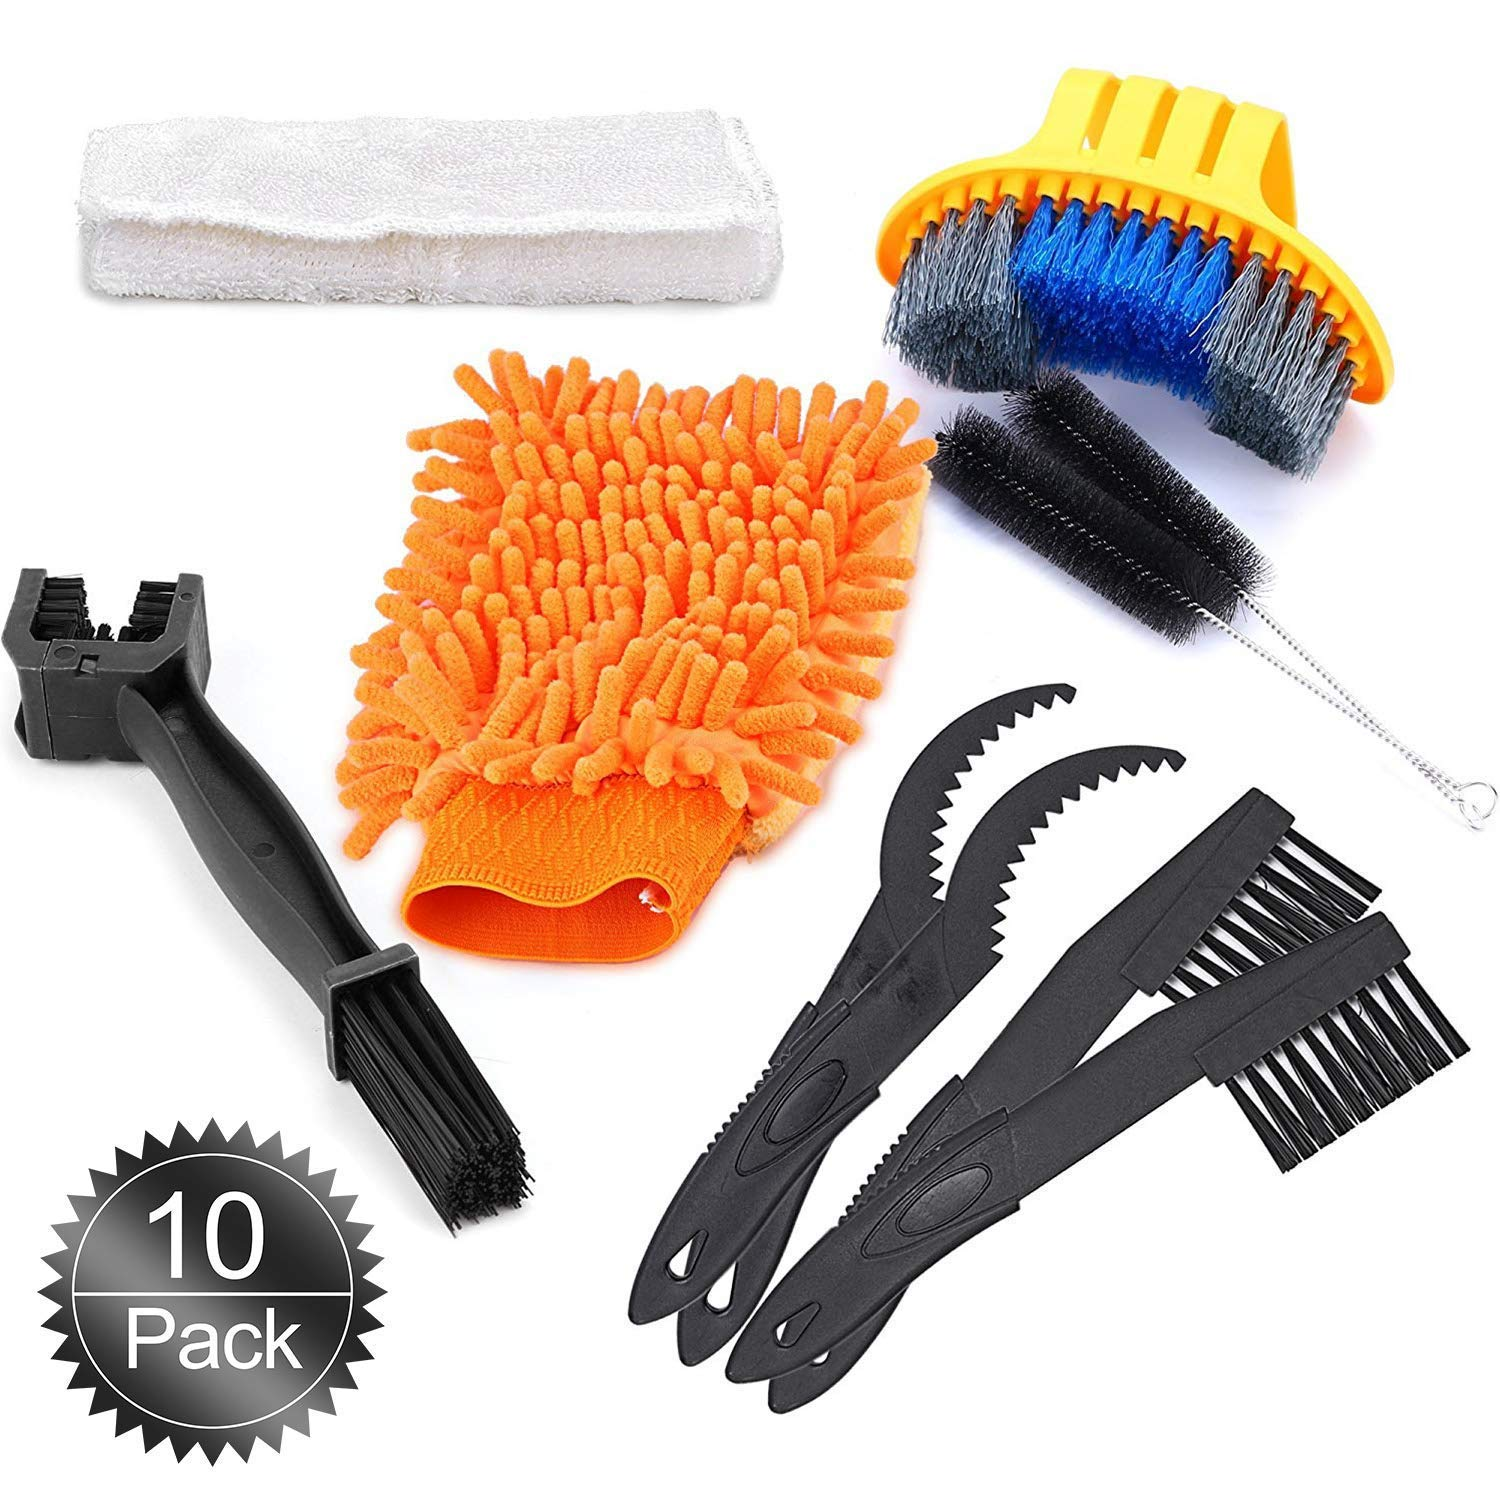 Oumers Bike Cleaning Tools Set (10 Pack), Bicycle Clean Brush Kit Make Mountain, Road, City, Hybrid, BMX and Folding Bike Chain/Crank/Sprcket/Tire Corner Rust Blot Dirt Clean | Durable/Practical by Oumers (Image #2)